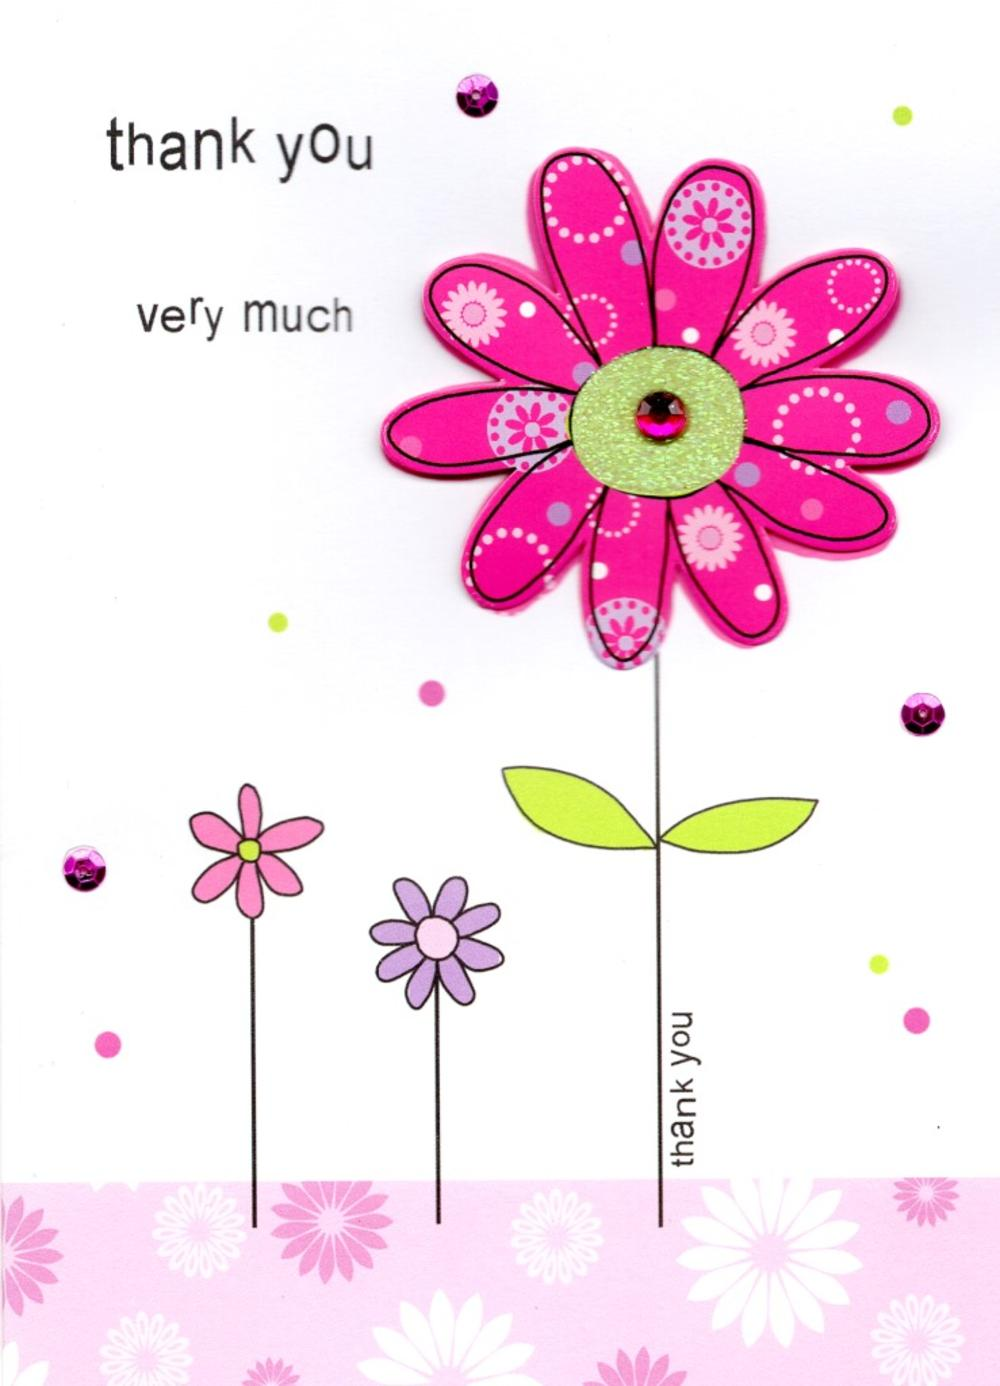 Thank you very much greeting card cards love kates thank you very much greeting card m4hsunfo